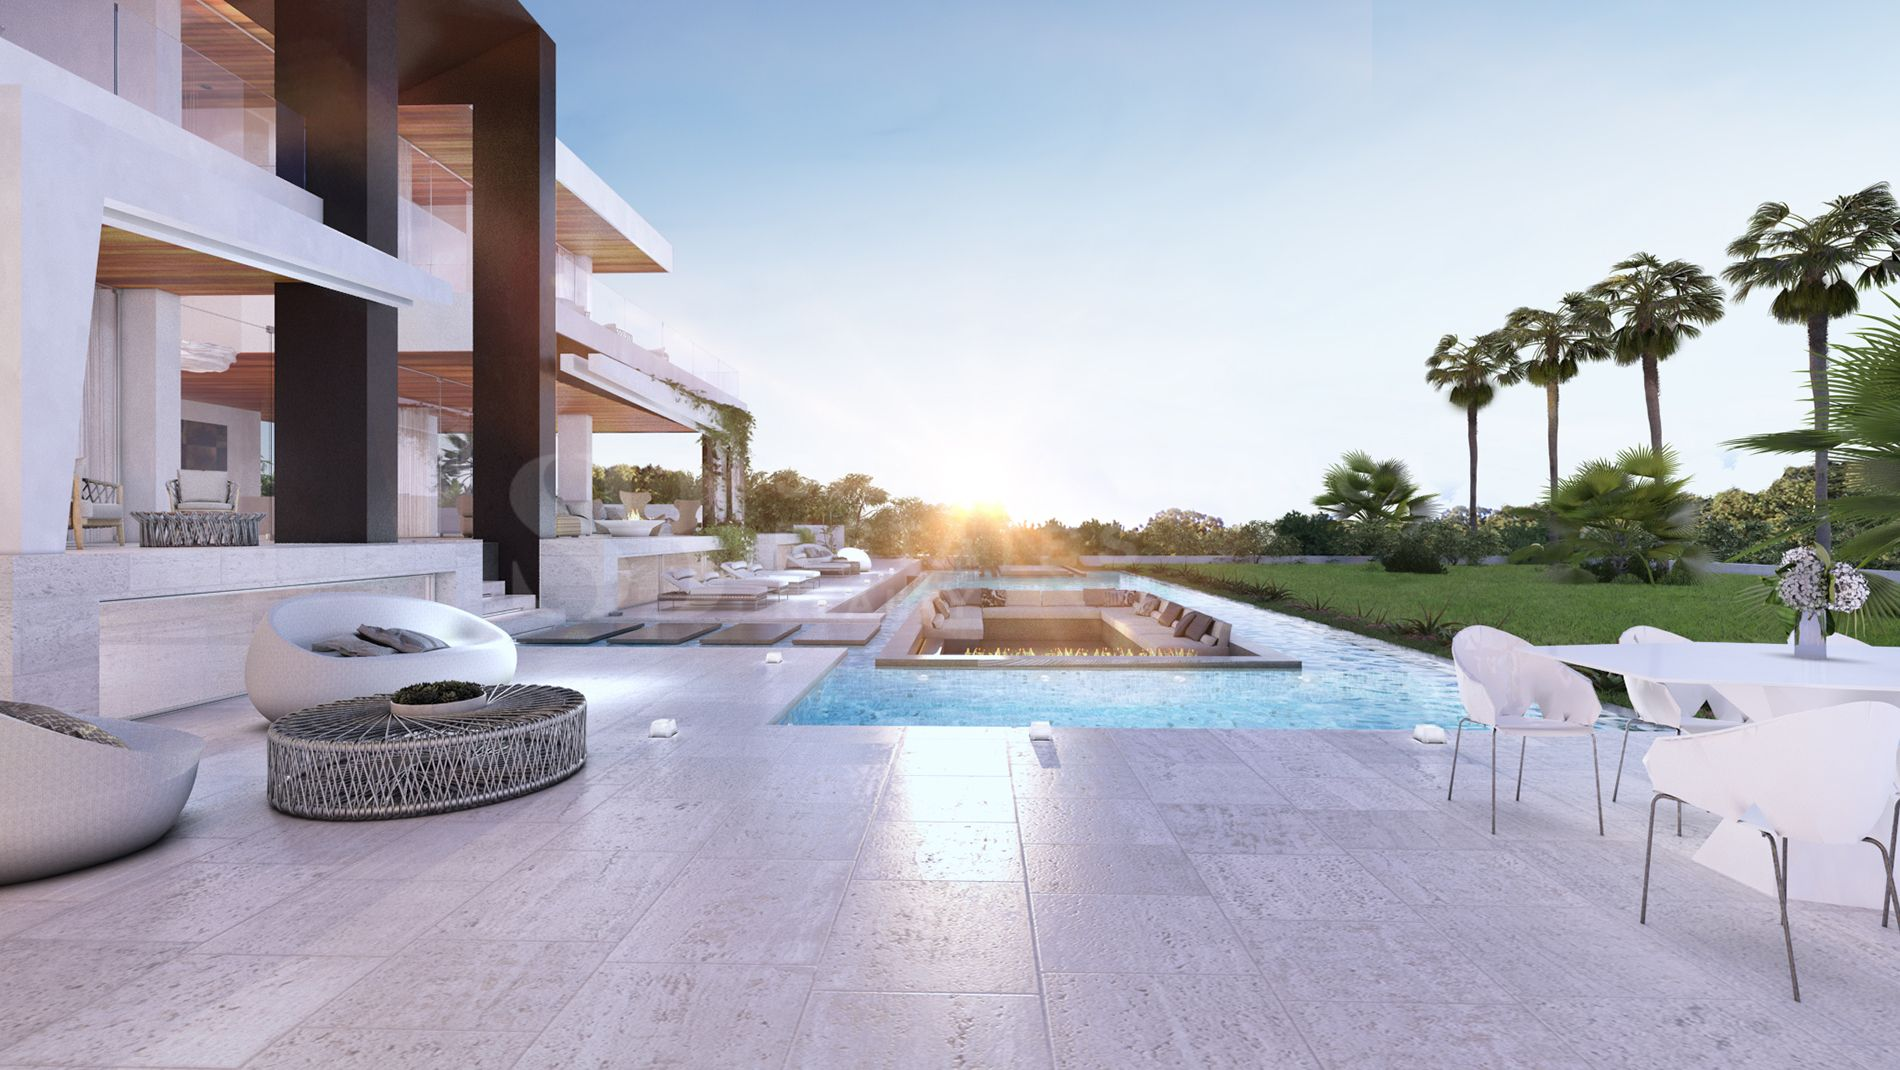 Luxurious Modern Villa Located in El Paraiso